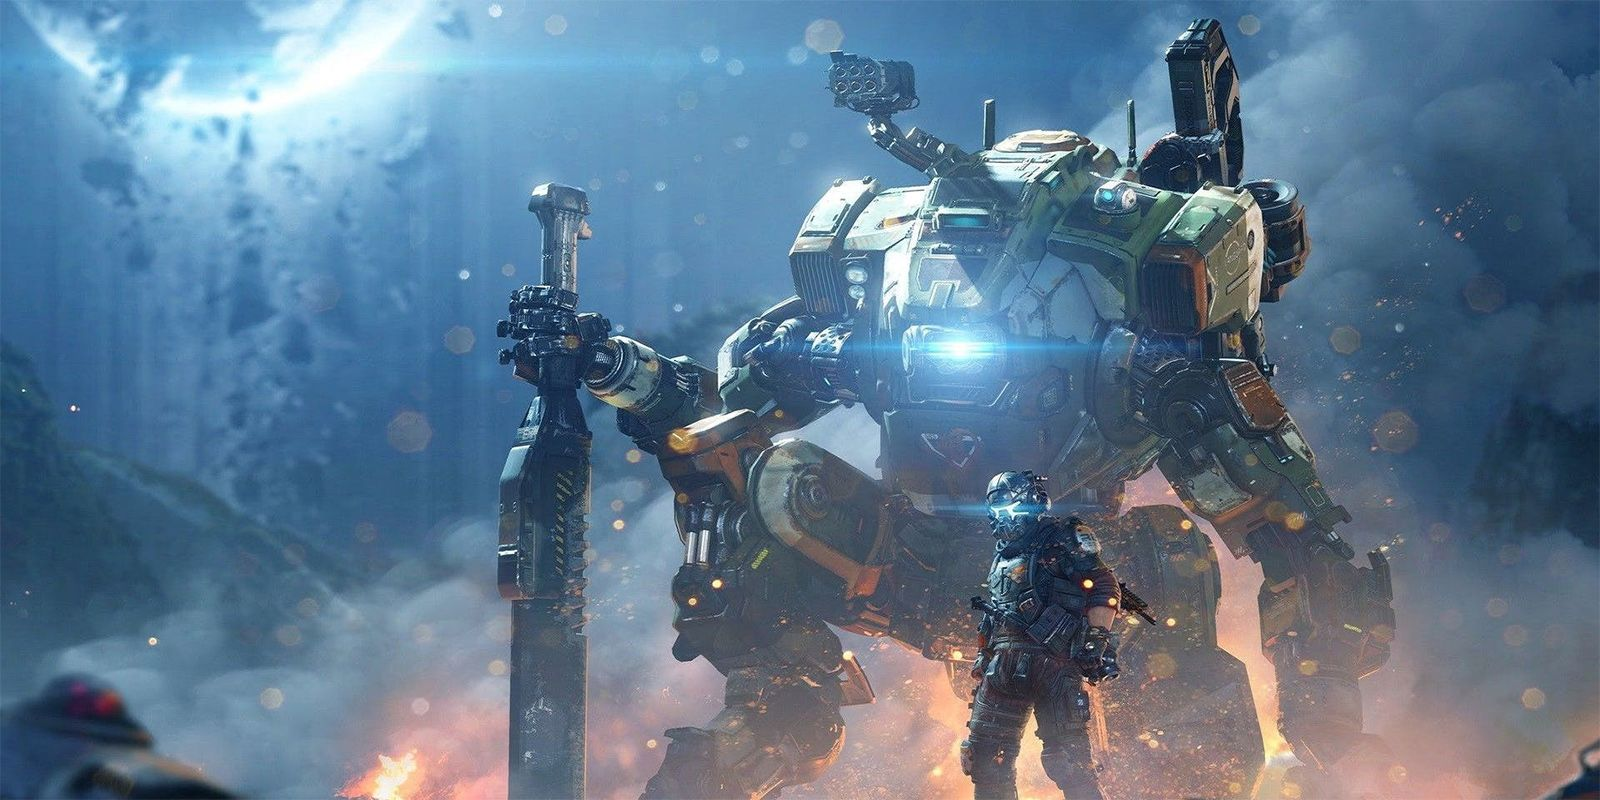 Titanfall 2 Sets Concurrent Player Record During Its Free Weekend